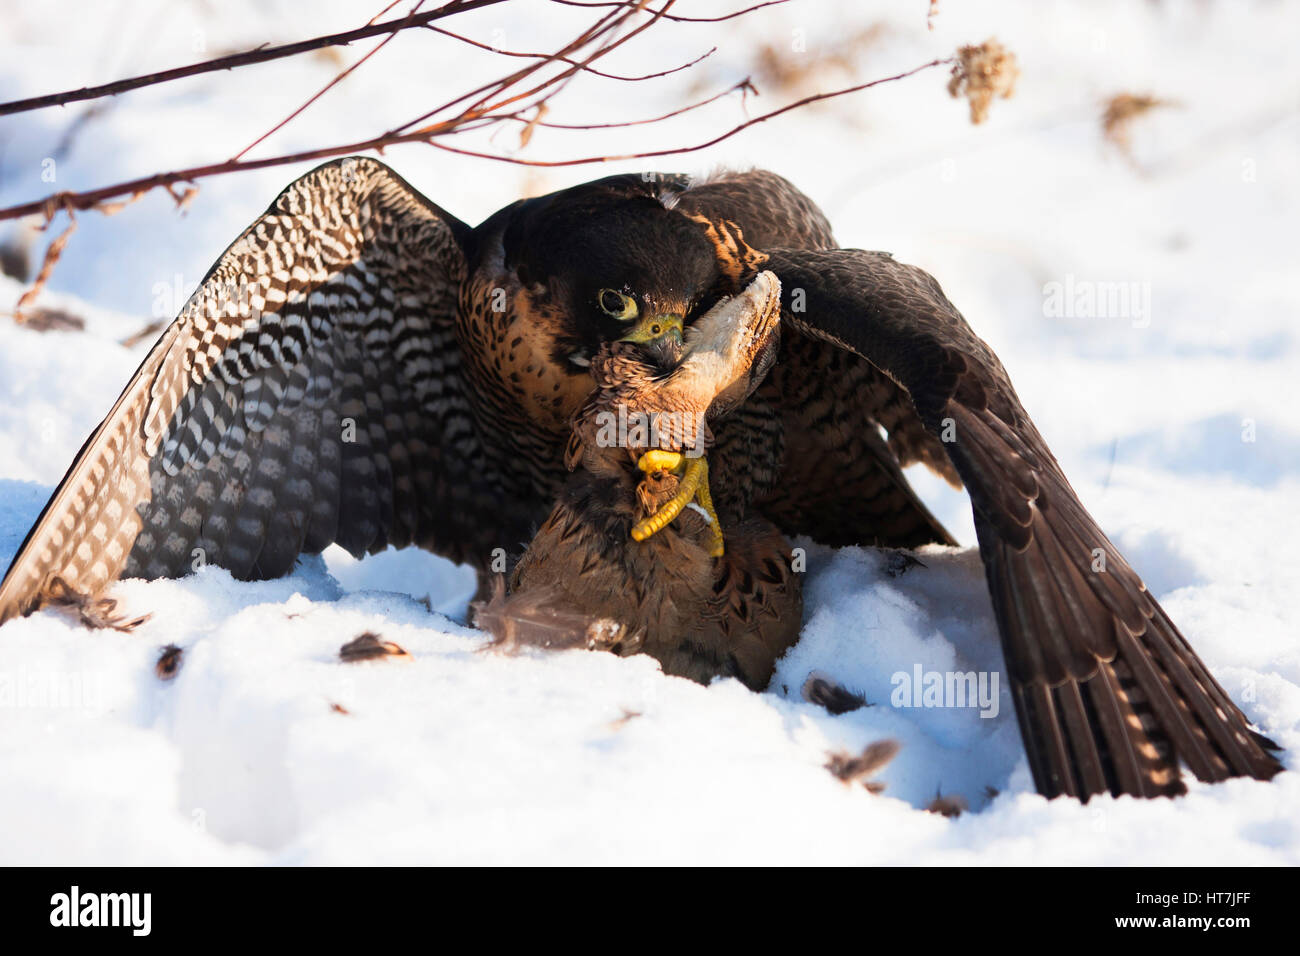 Close-up Of A Falcon With A Hunted Pheasant On Snow - Stock Image